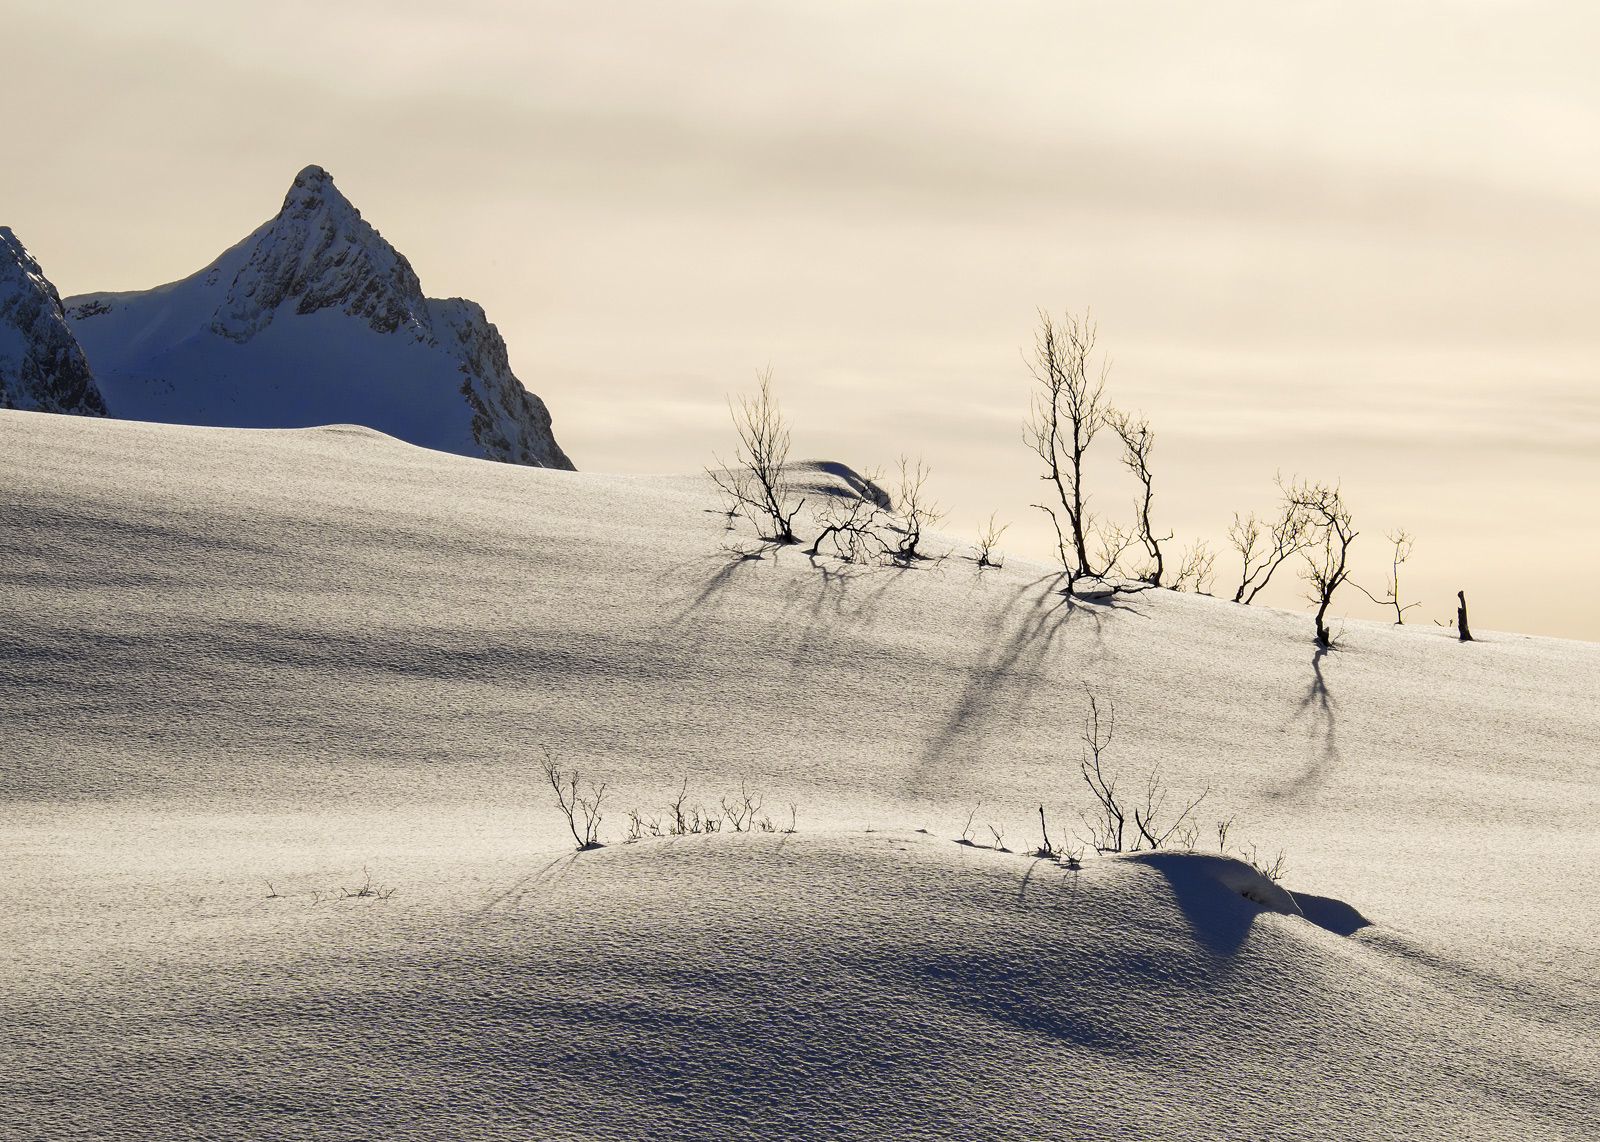 Daliesque 1, Eidet, Senja, Norway, beautiful, birch, little, trees, bowed, prevailing winds, mountain, plateau, white, g, photo